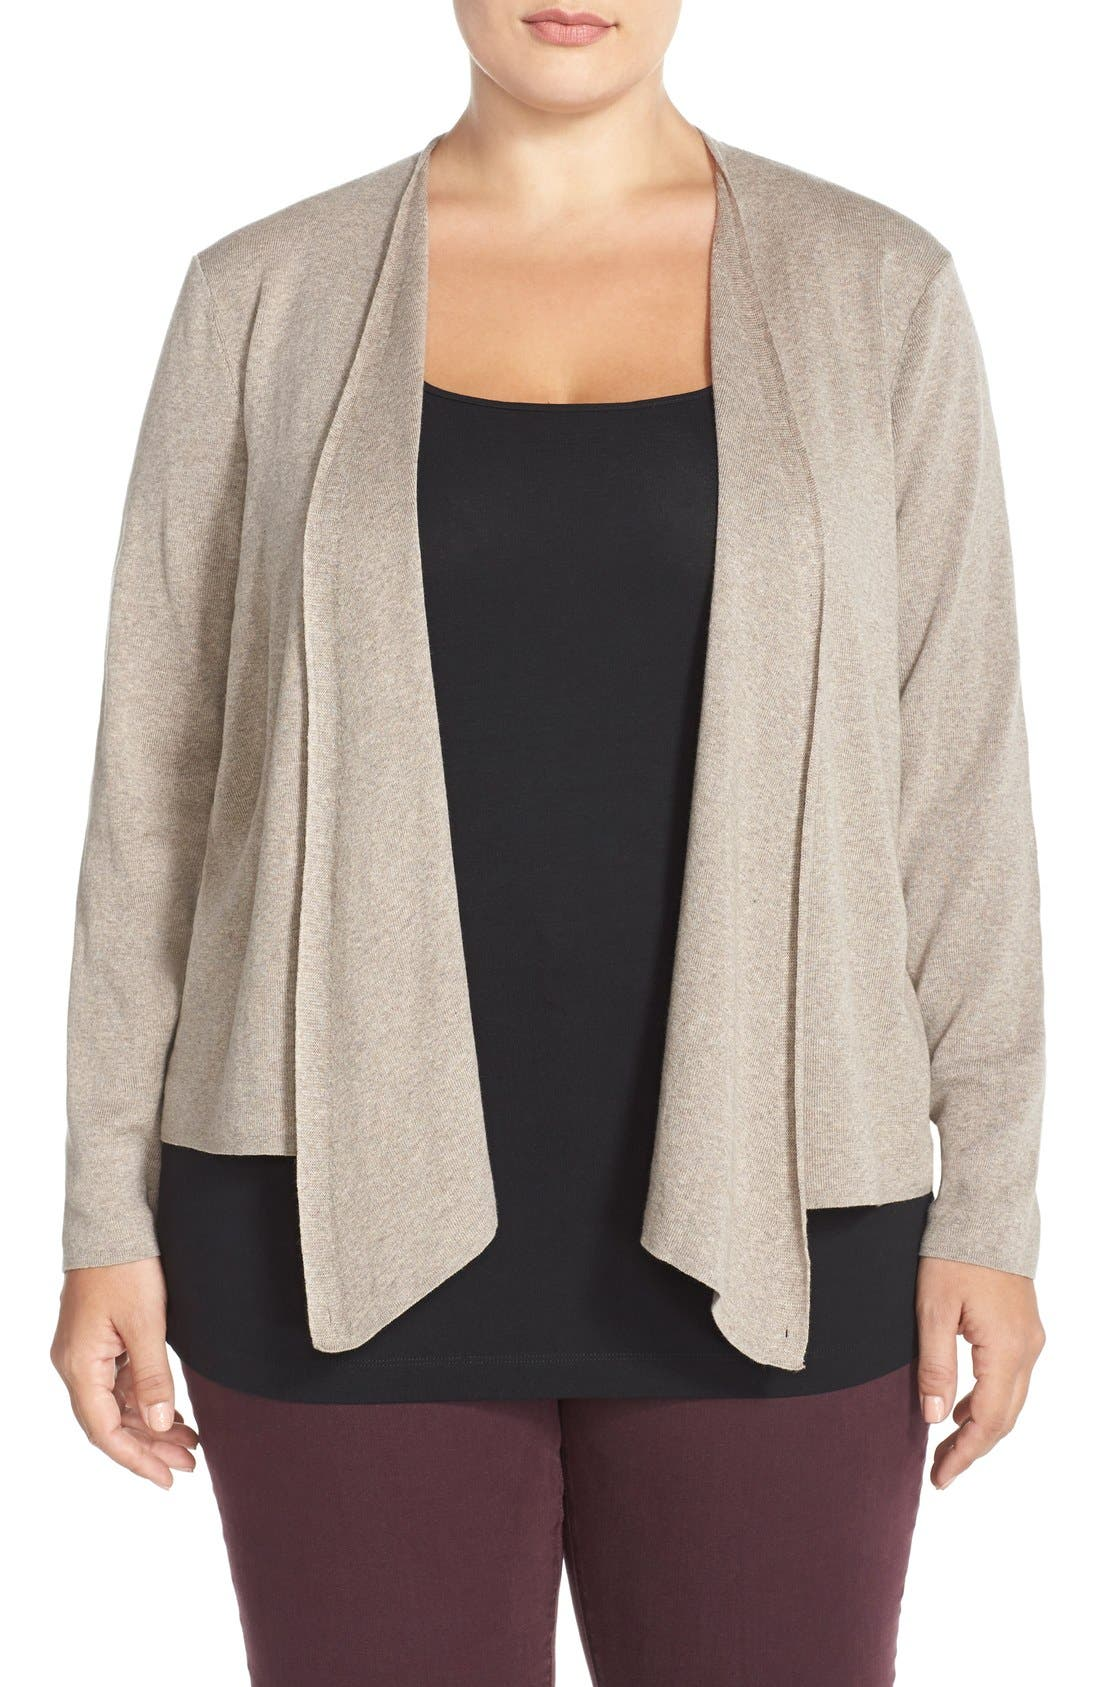 Main Image - NIC+ZOE 4-Way Convertible Cardigan (Plus Size)